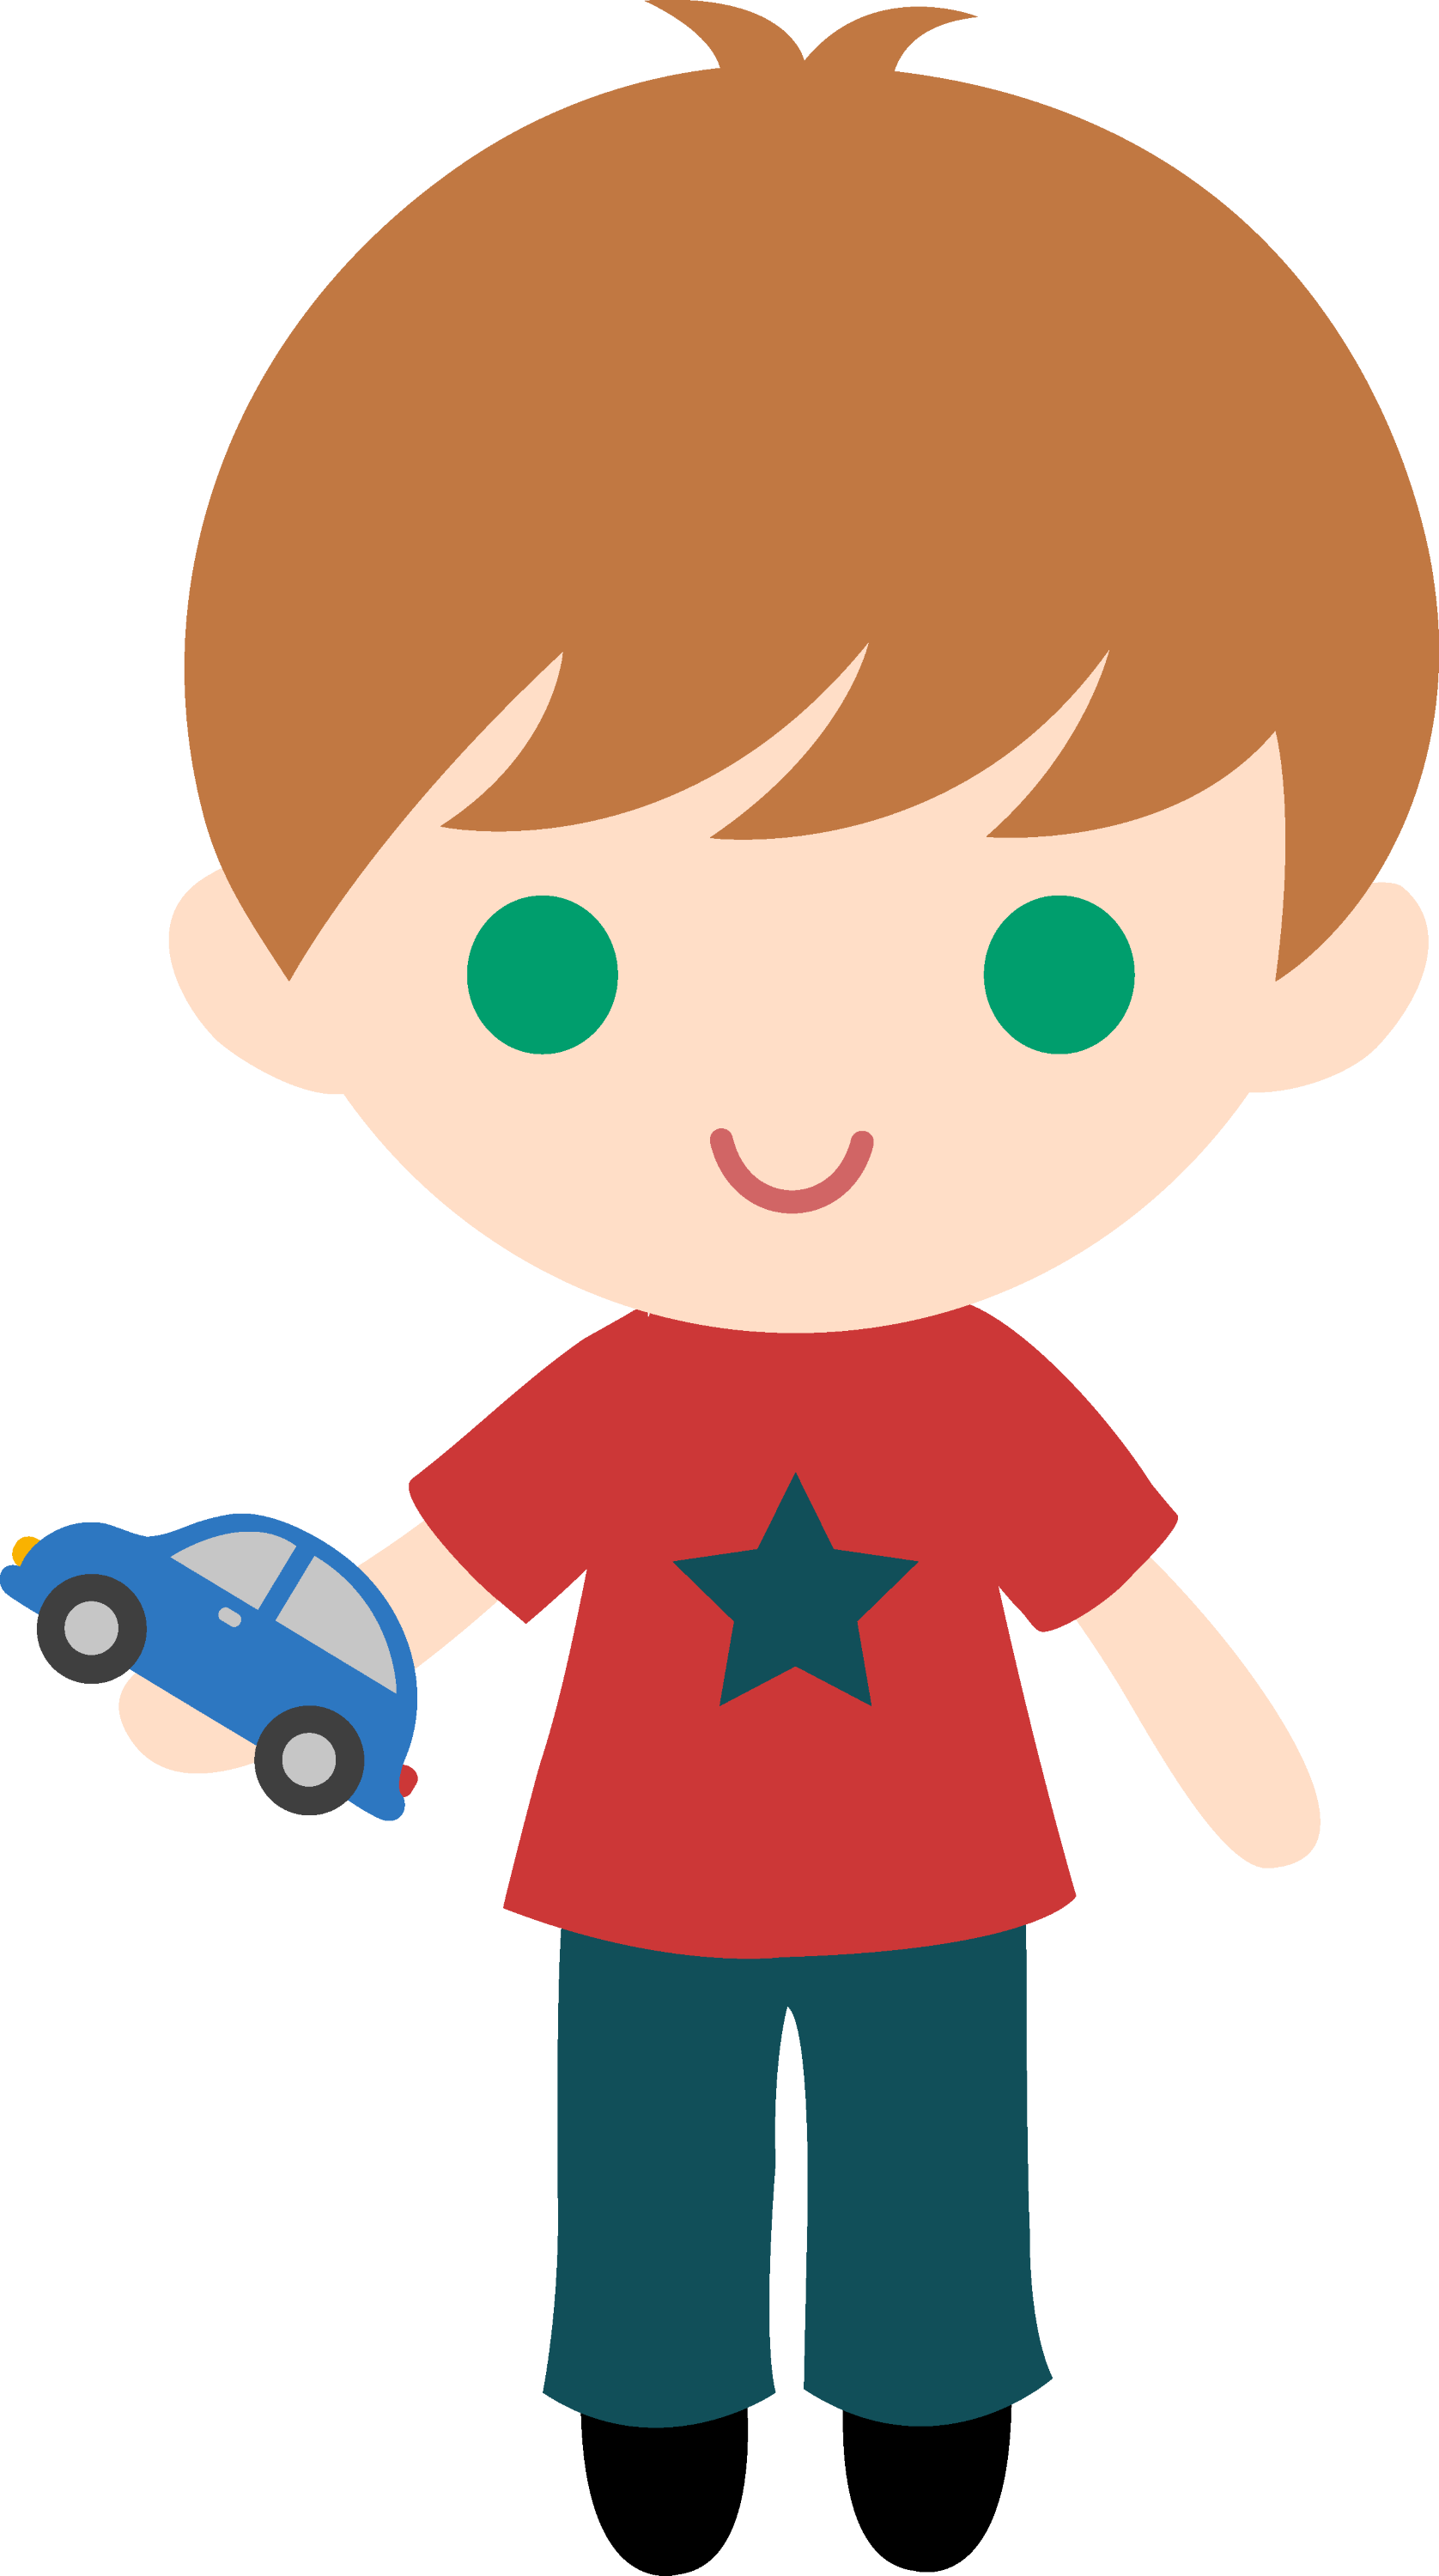 Boy With Toy Car Clipart - By Liz - Free Clip Art